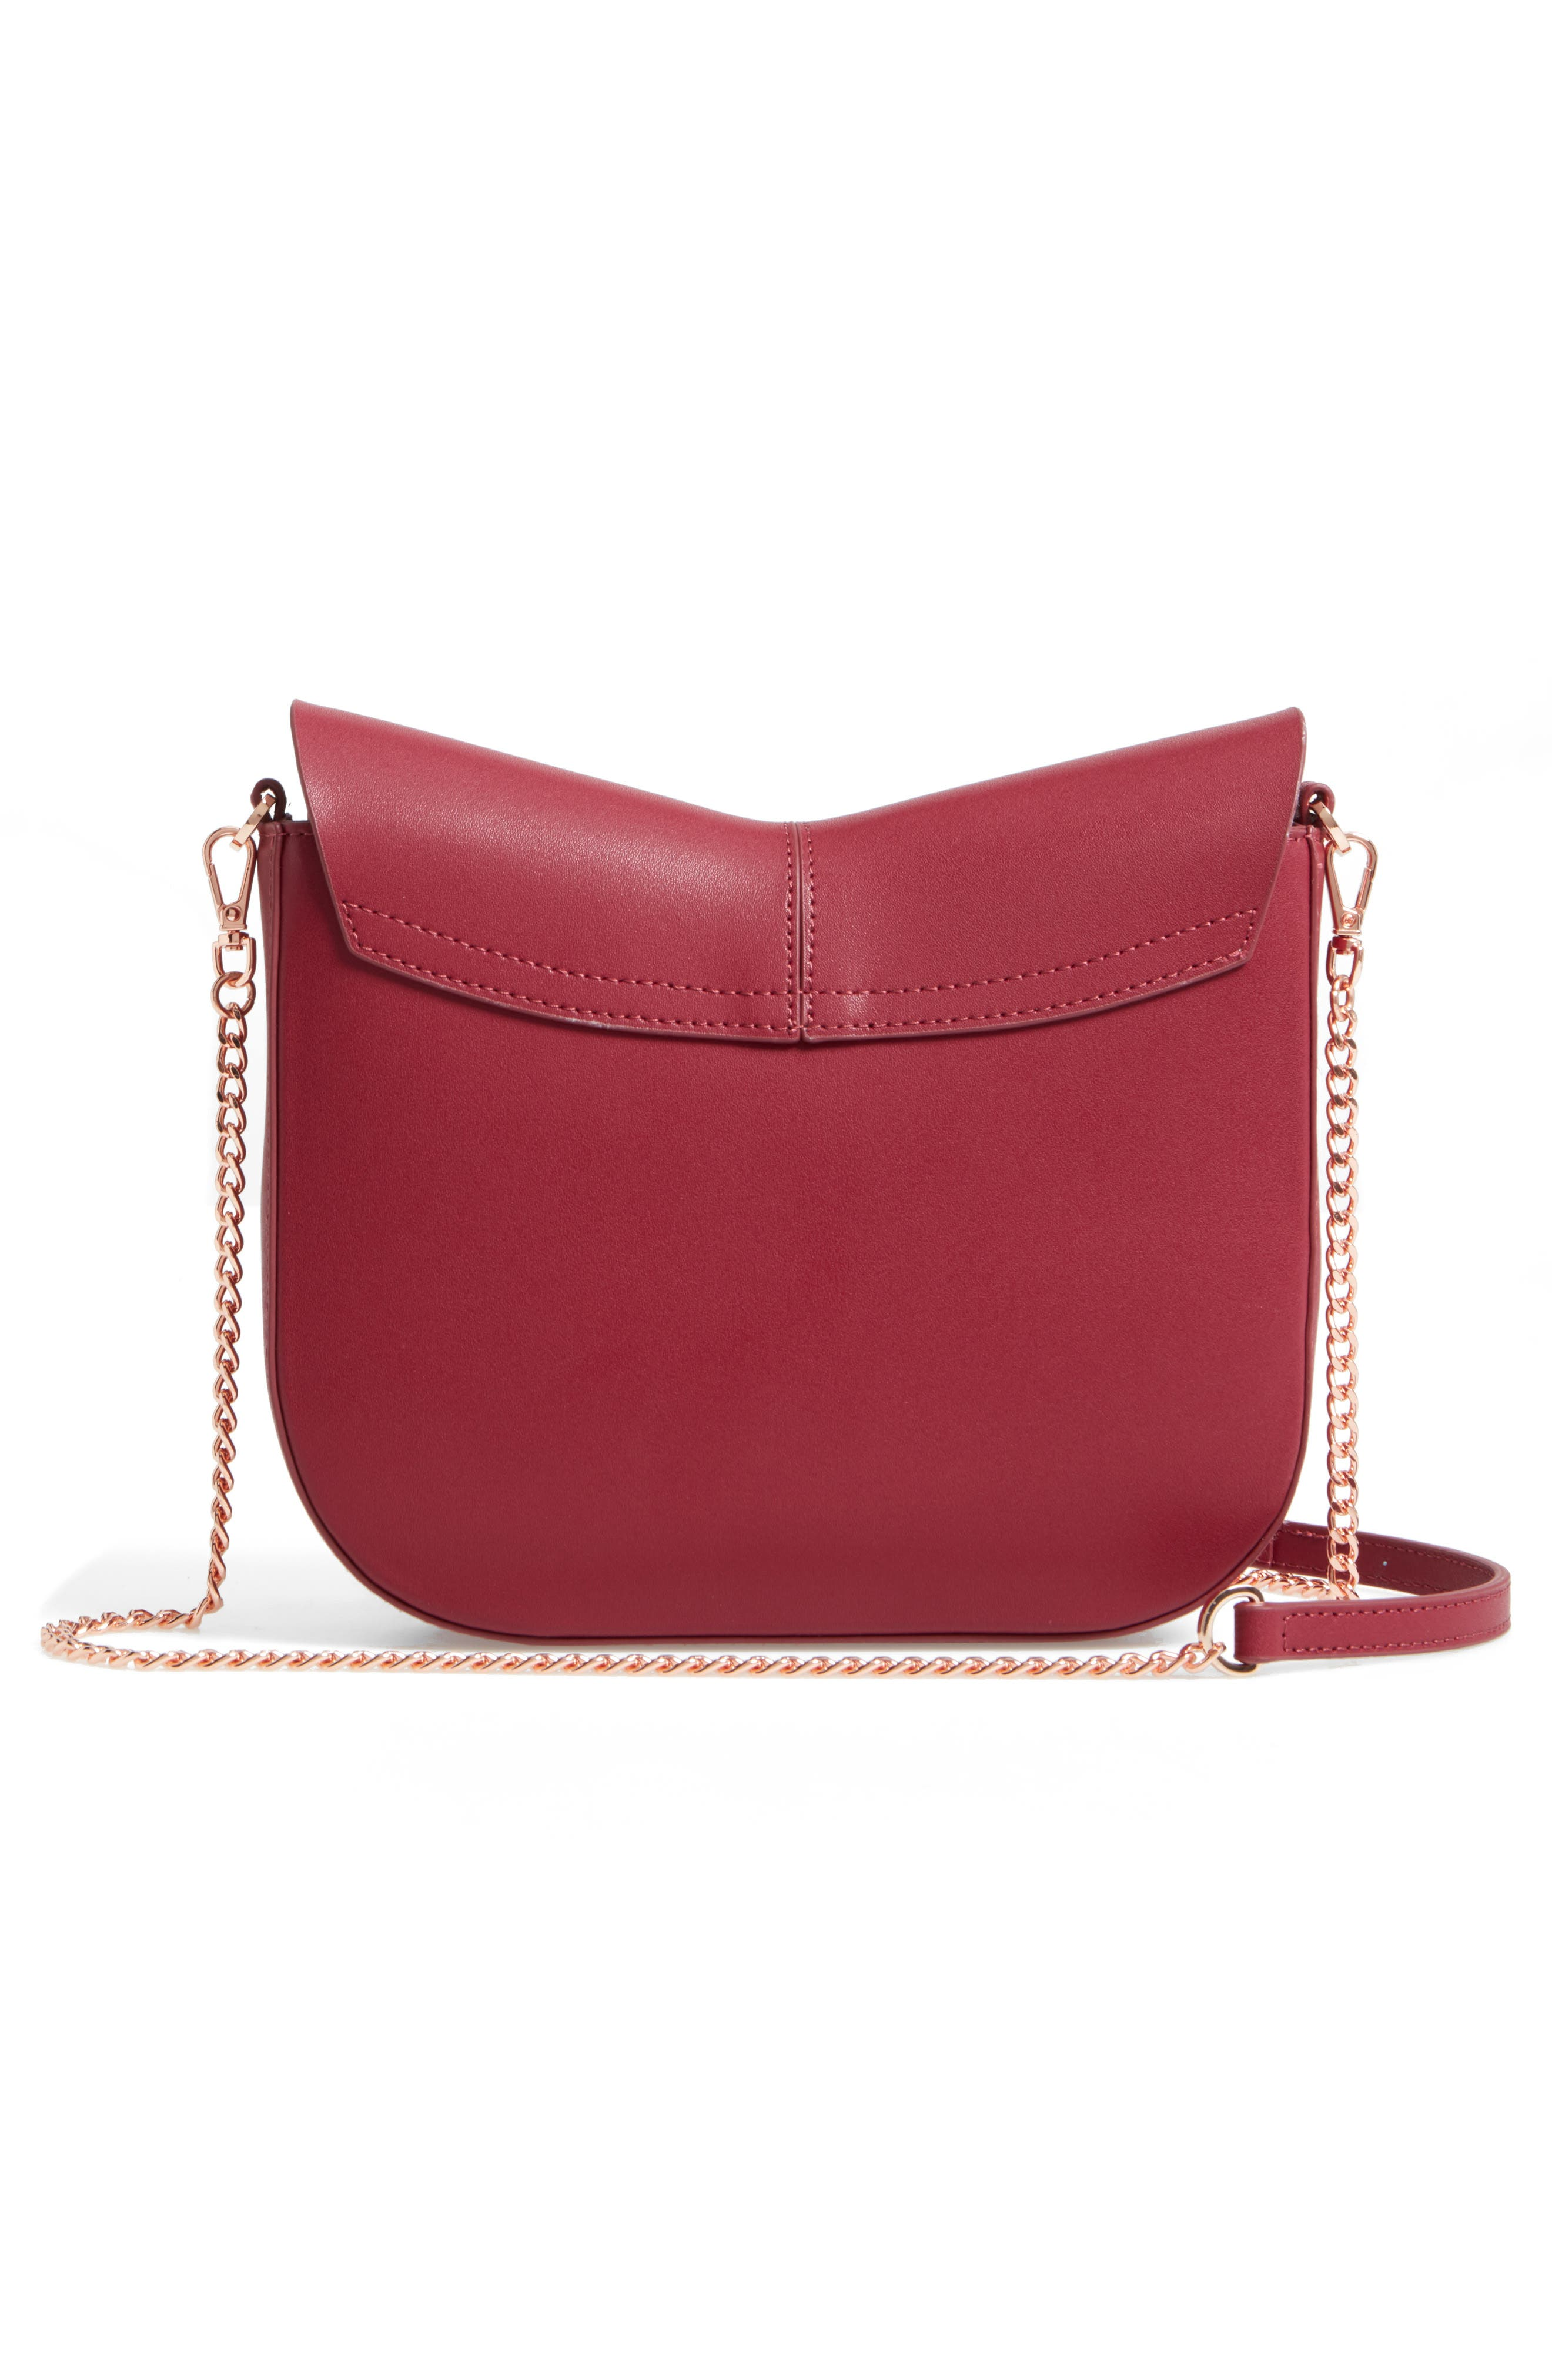 Kittii Cat Leather Crossbody Bag,                             Alternate thumbnail 3, color,                             Oxblood